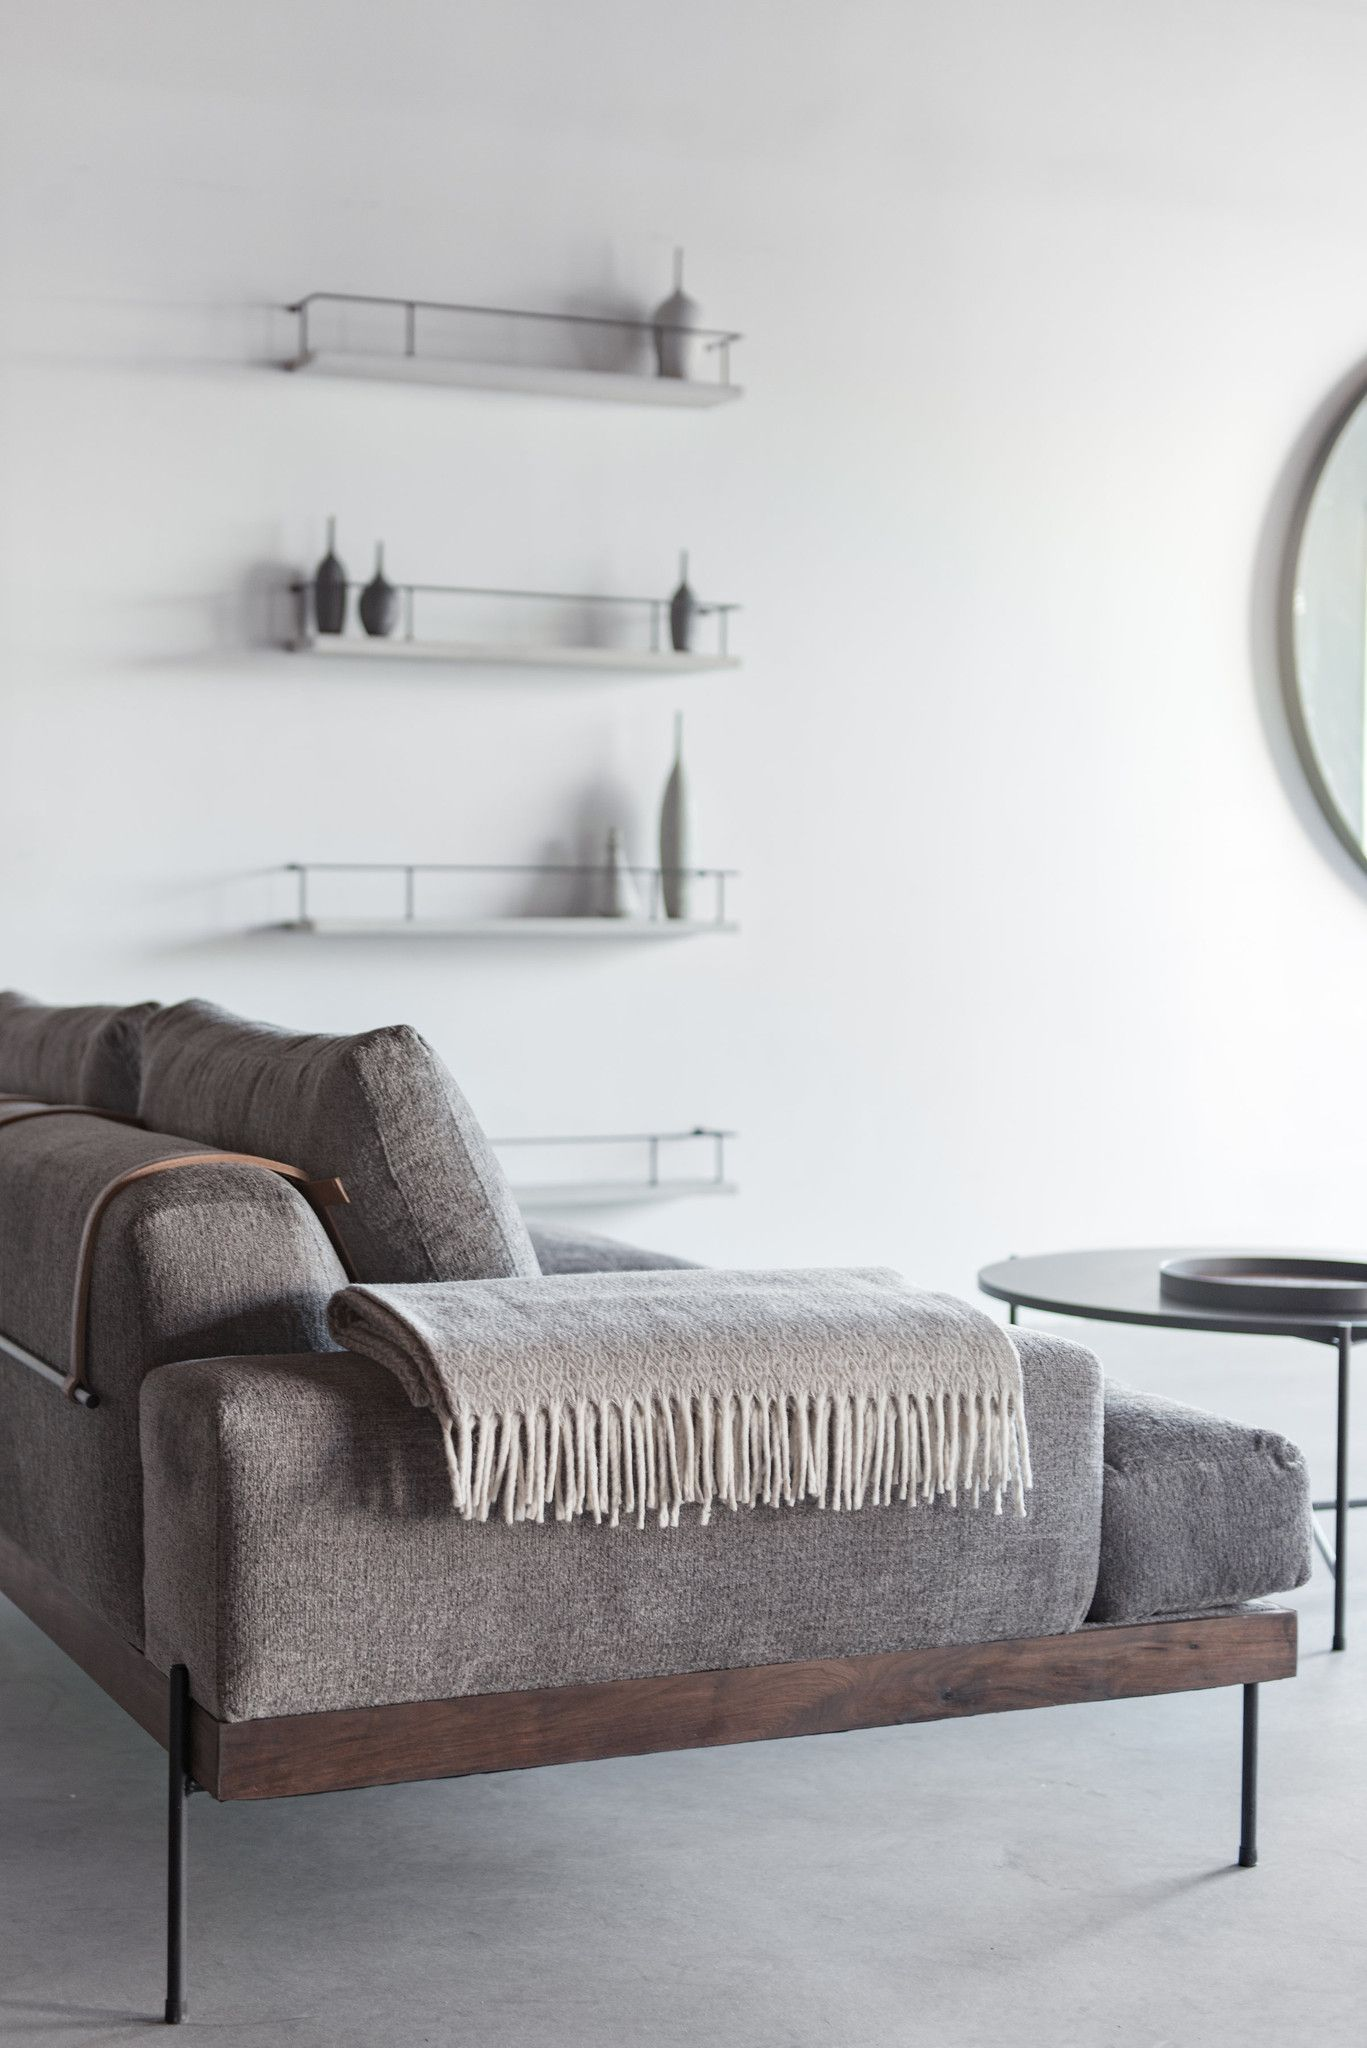 rivera sofa | industrial, woods and house